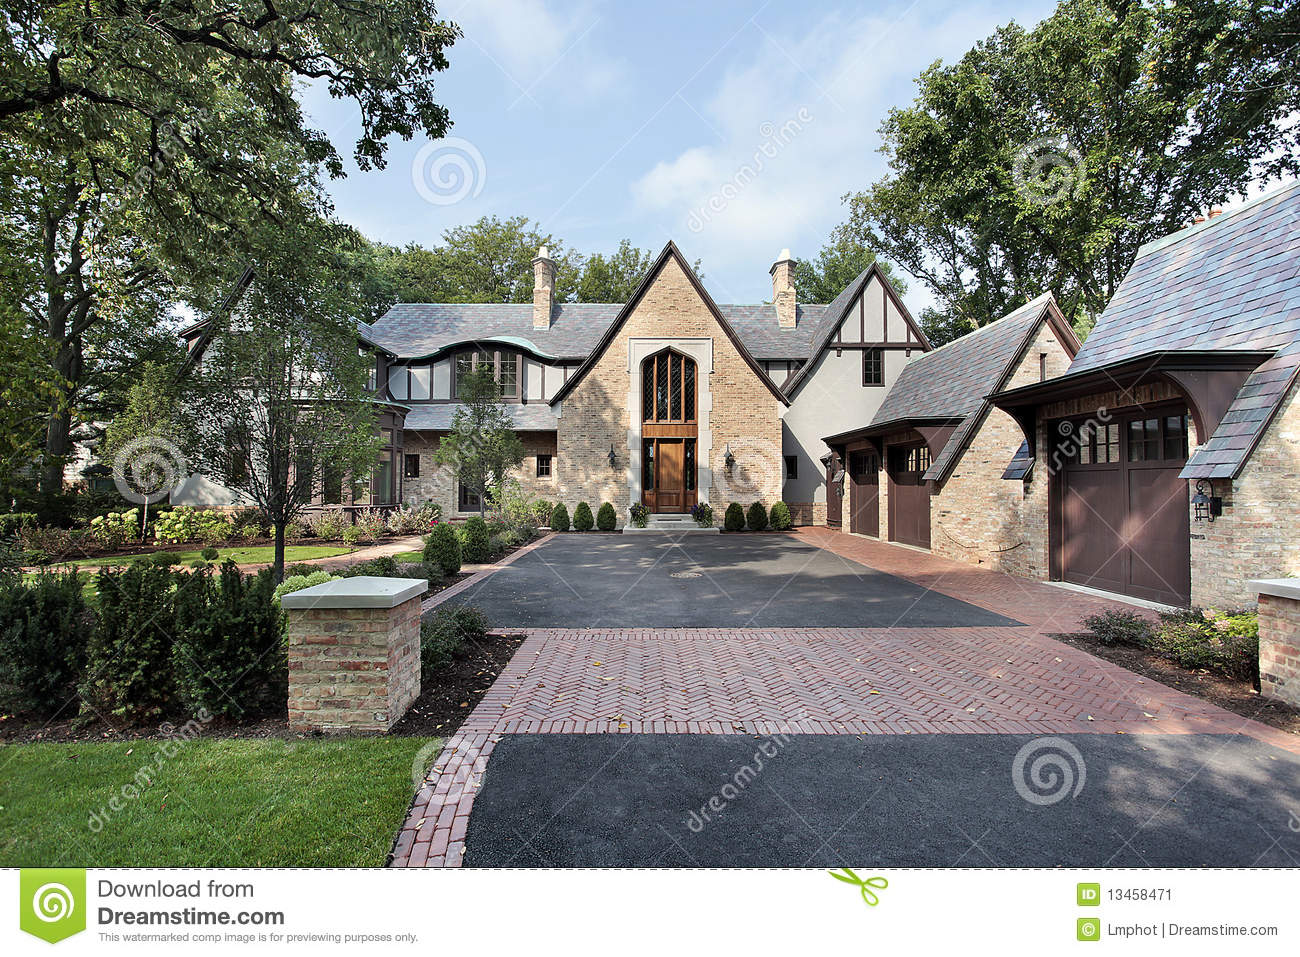 Luxury Home With Four Car Garage Stock Image Image 13458471: 4 car garage